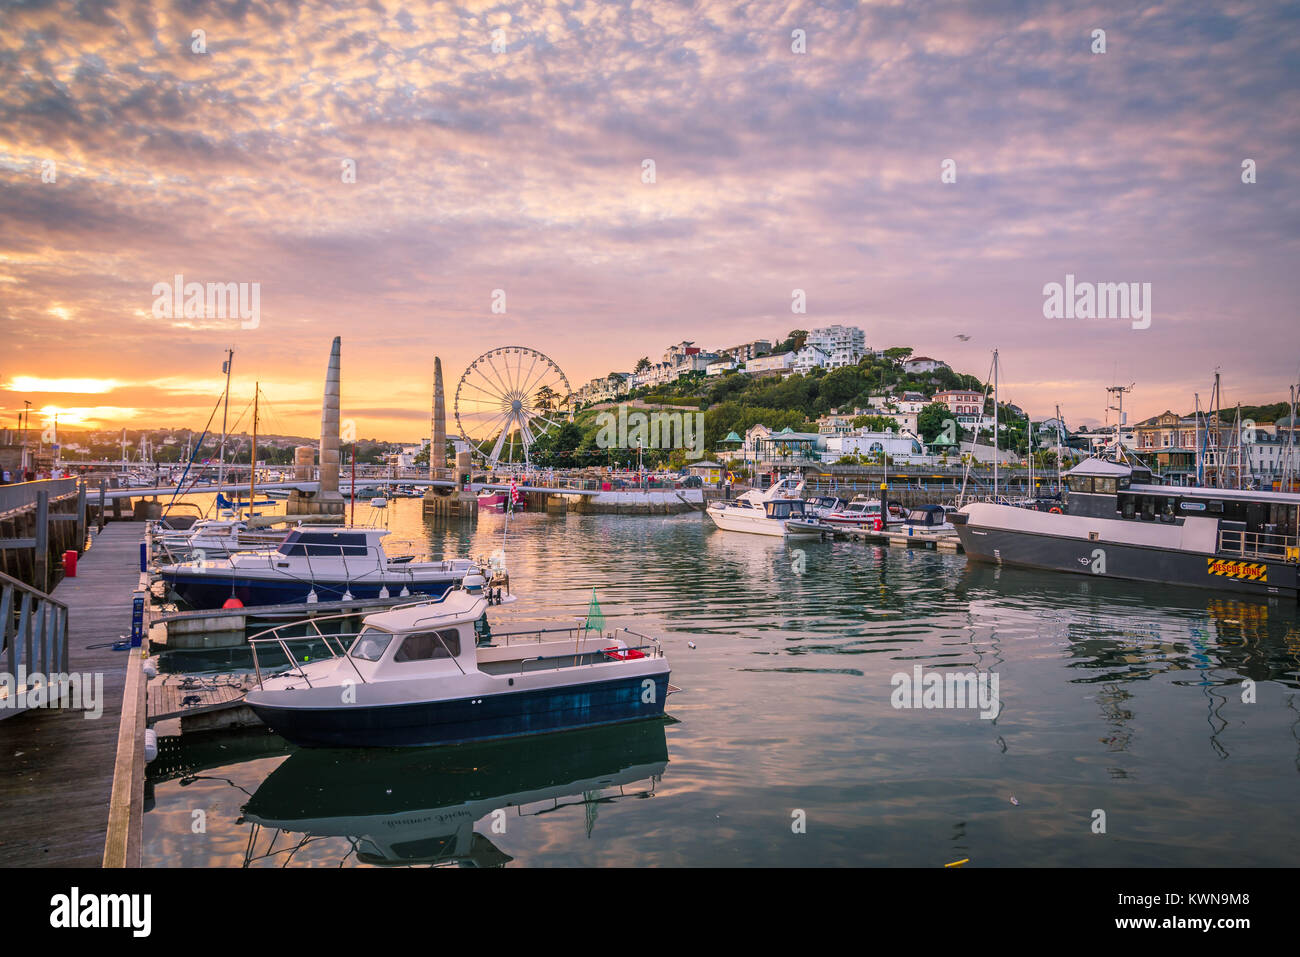 Torquay harbour at sunset. Panoramic view of the popular seaside resort town during a colorful sunset. Devon, England - Stock Image